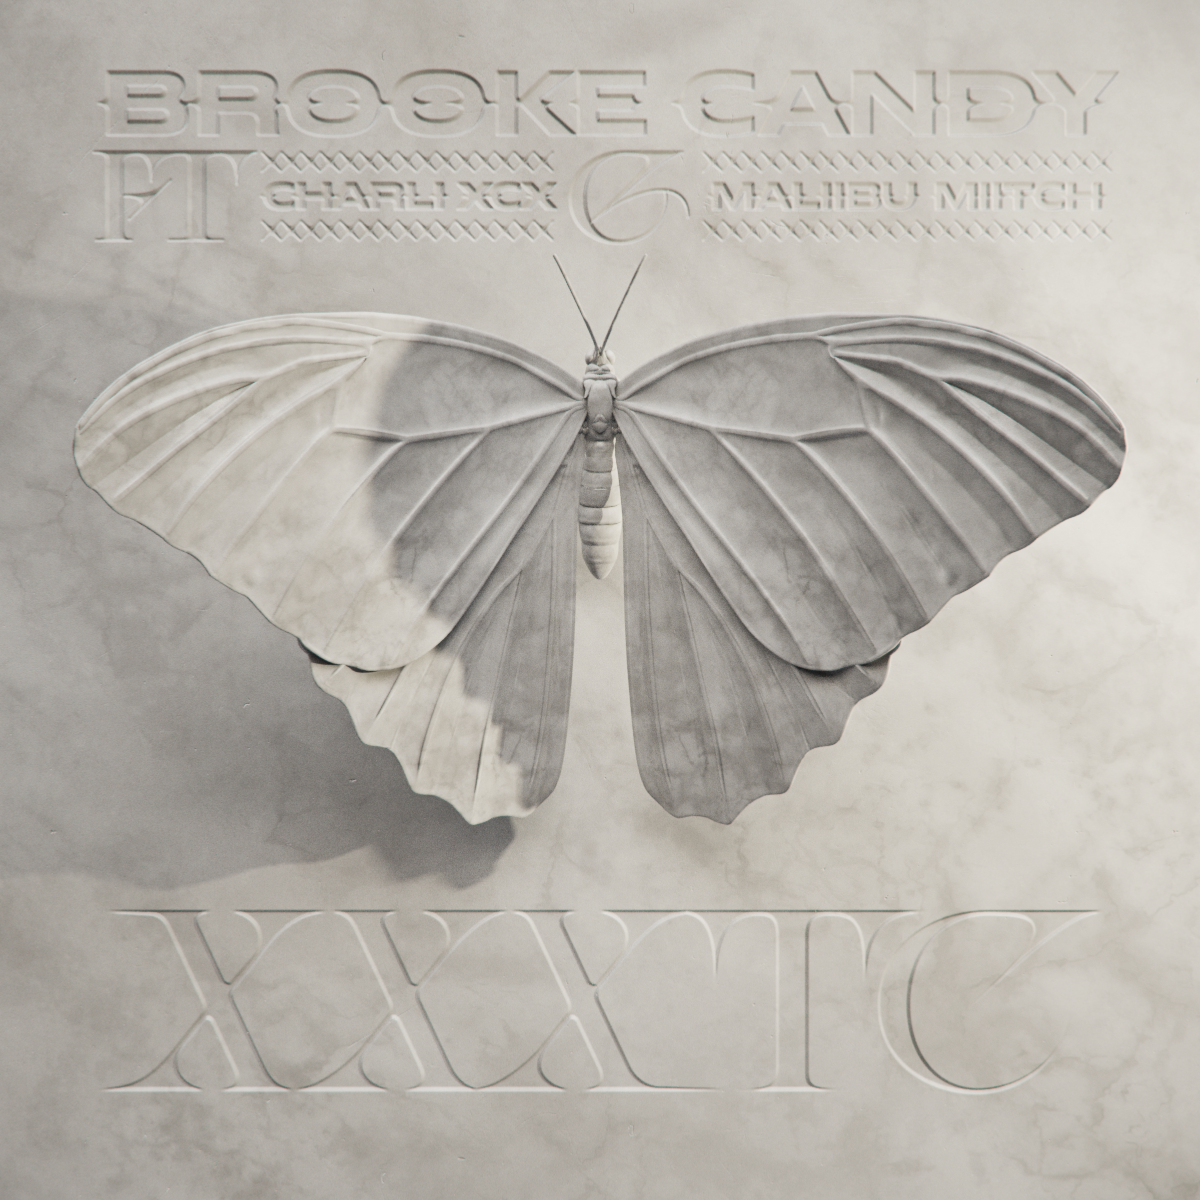 Brooke Candy - XXXTC